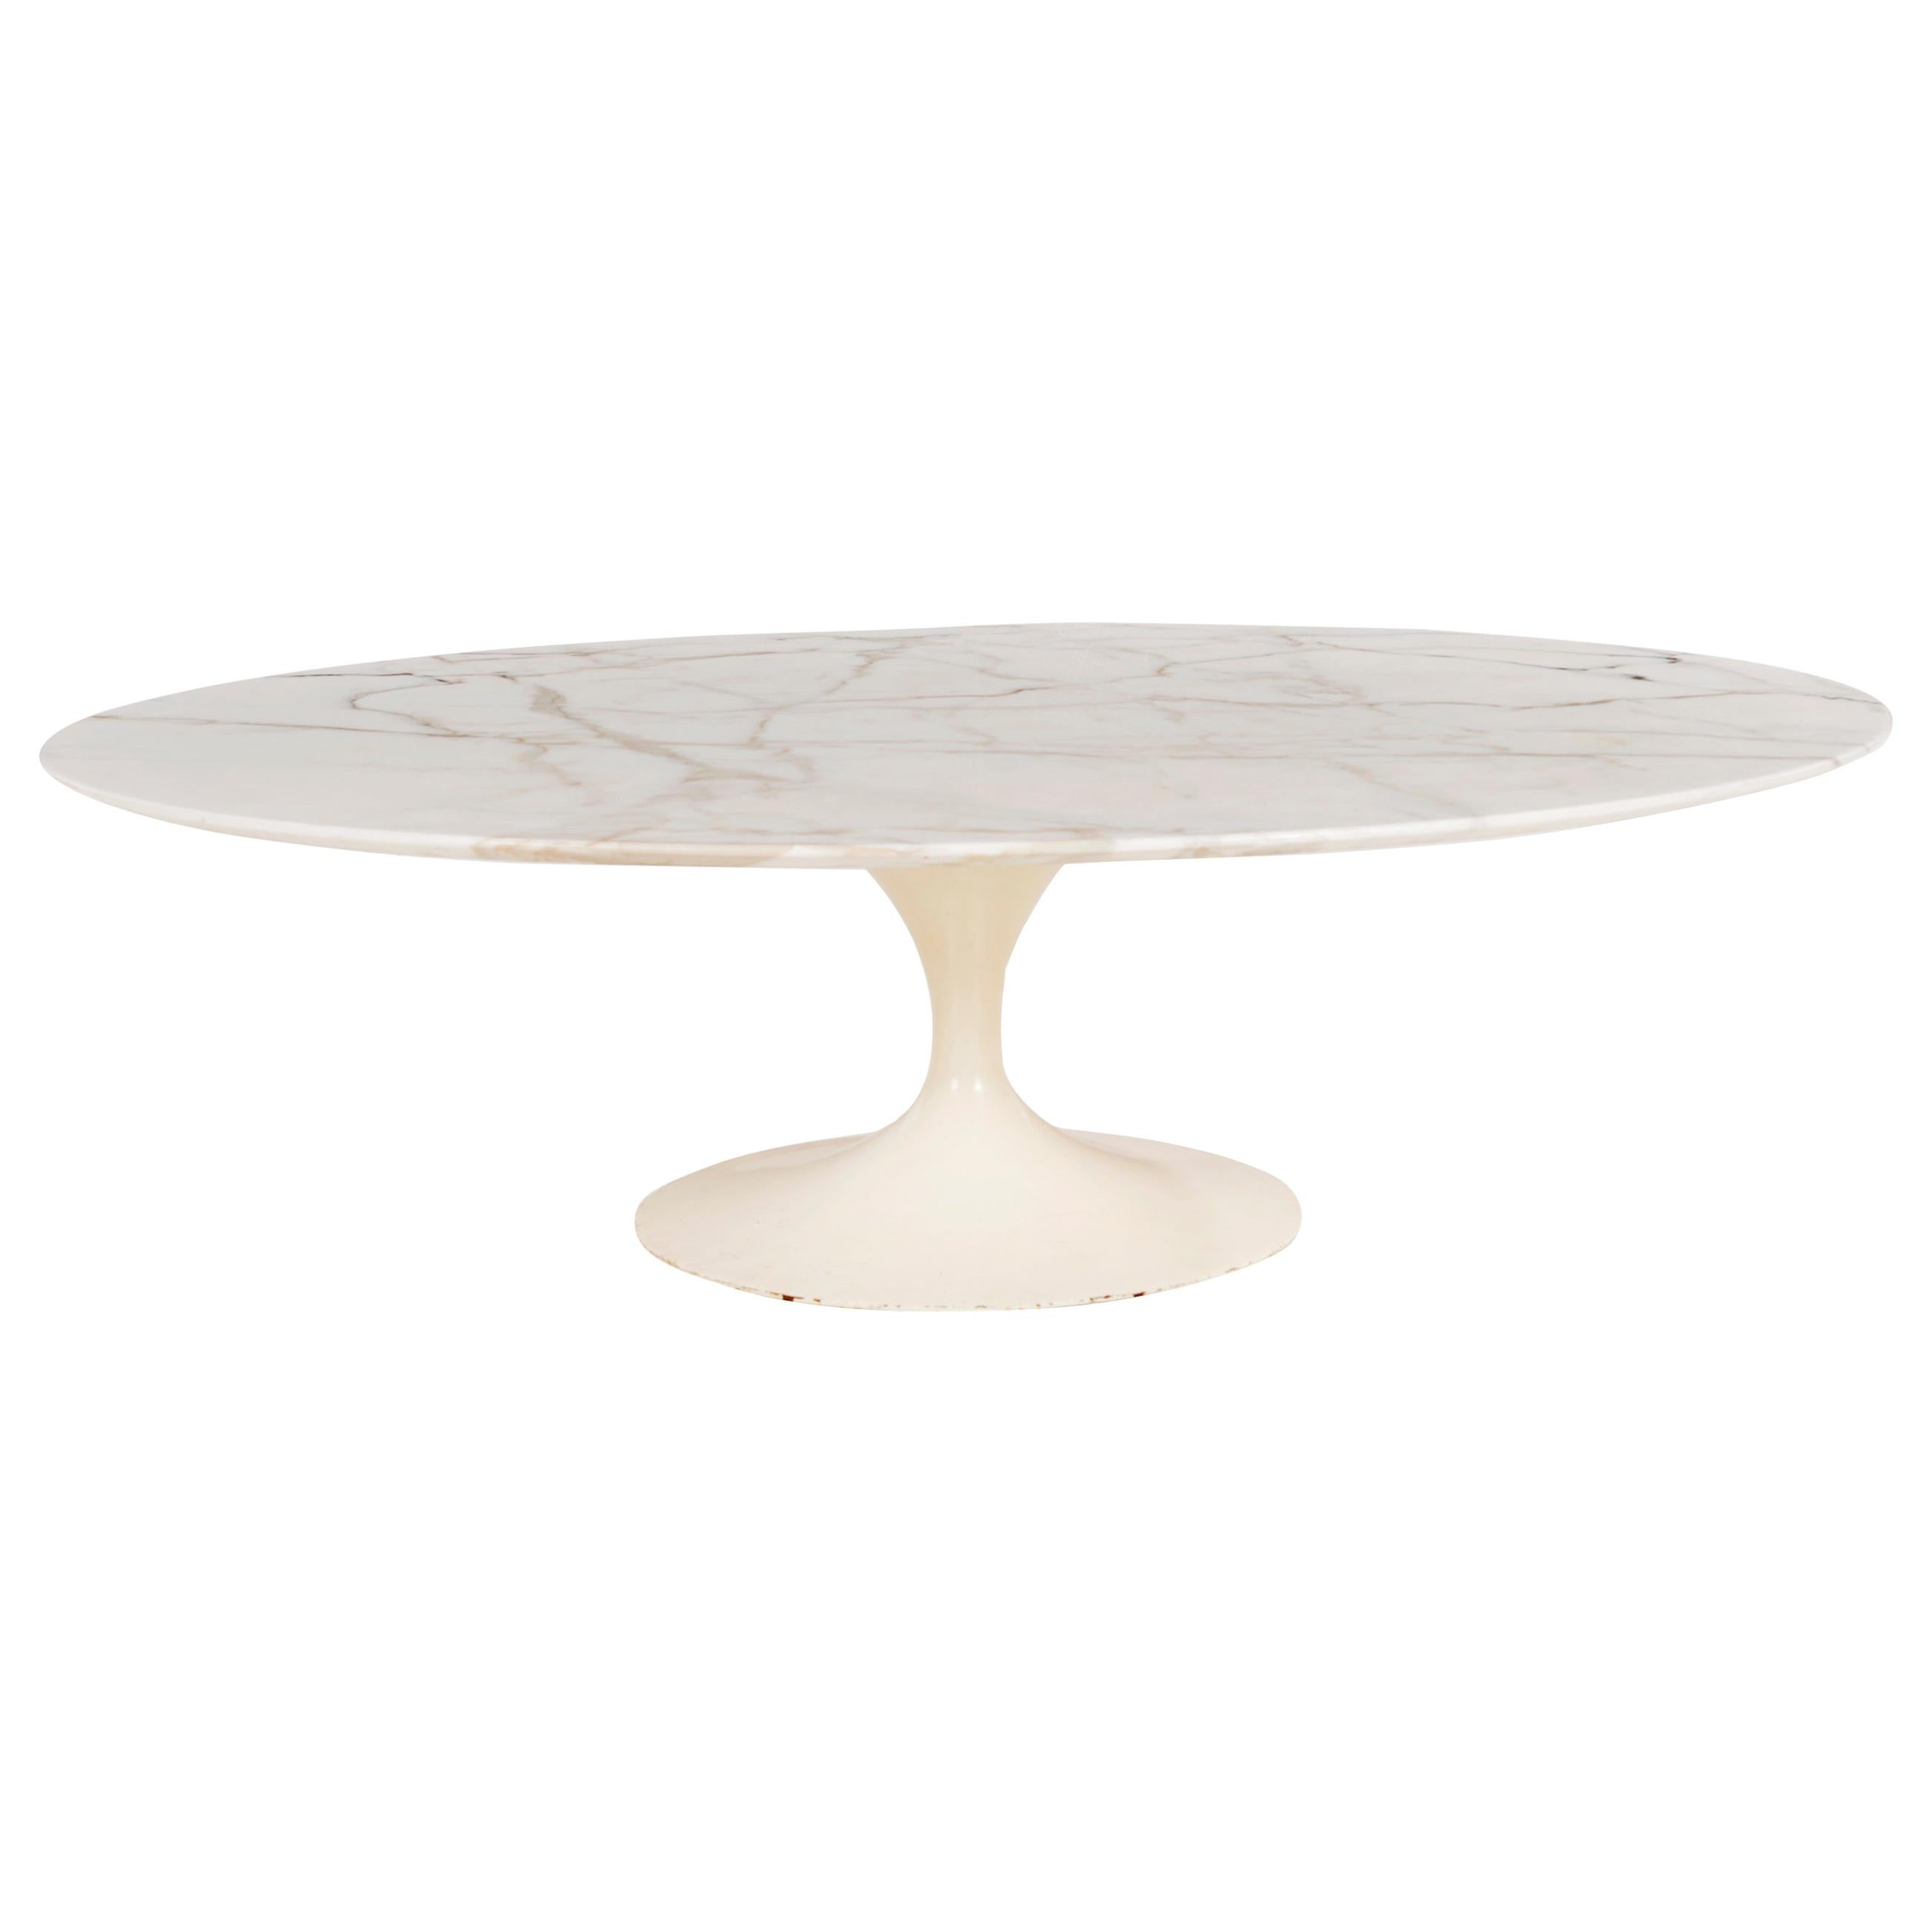 Eero Saarinen Tulip Cocktail Table